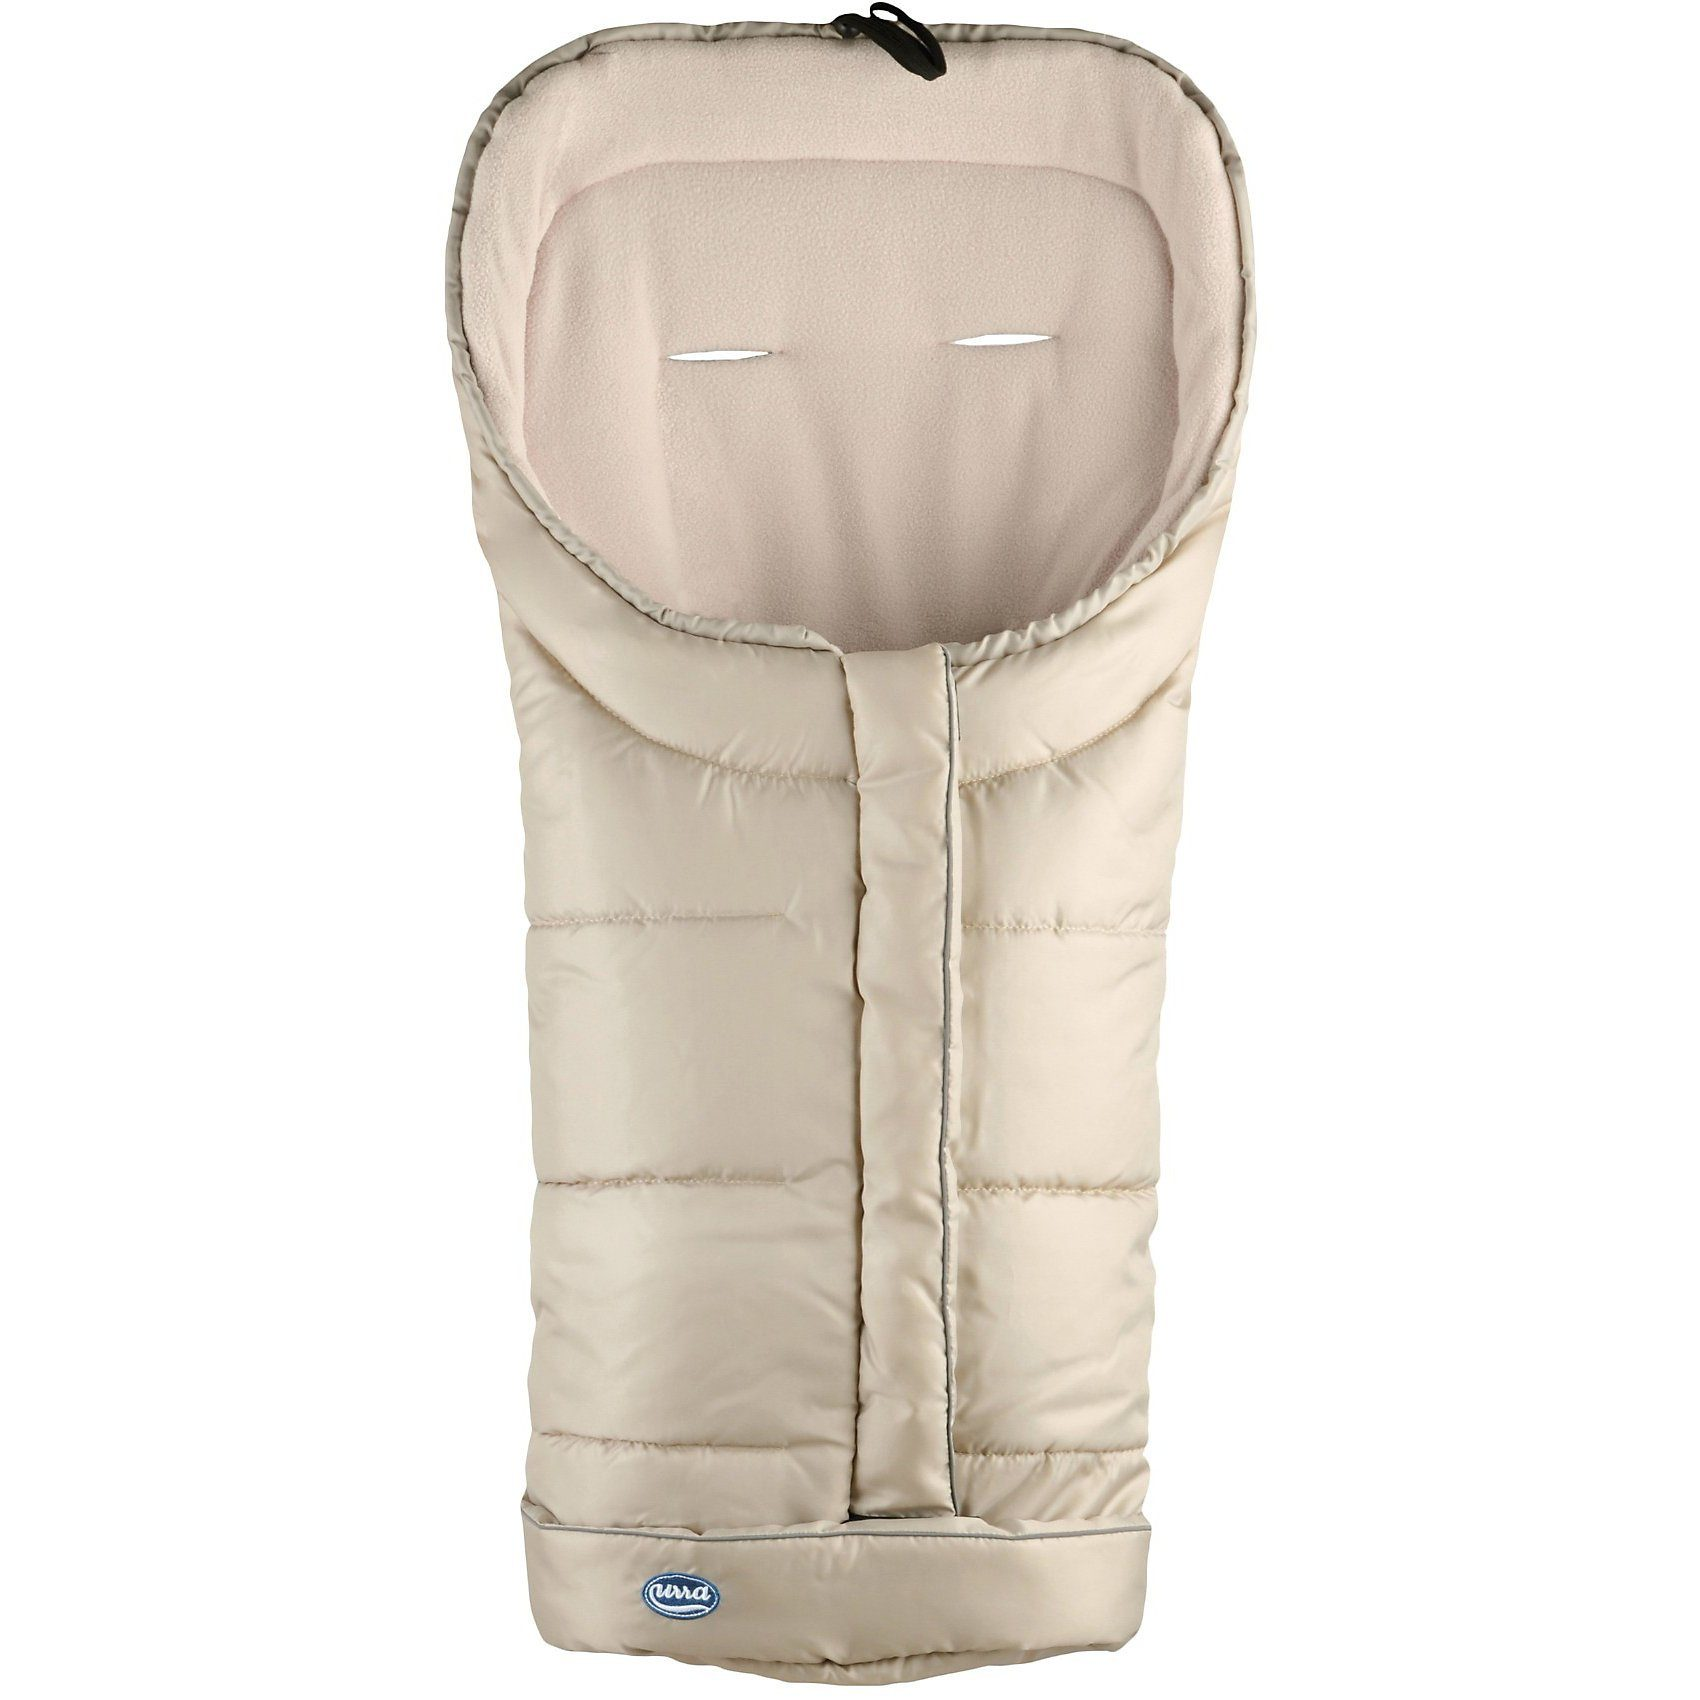 Urra Techno-Fleece Fußsack, beige